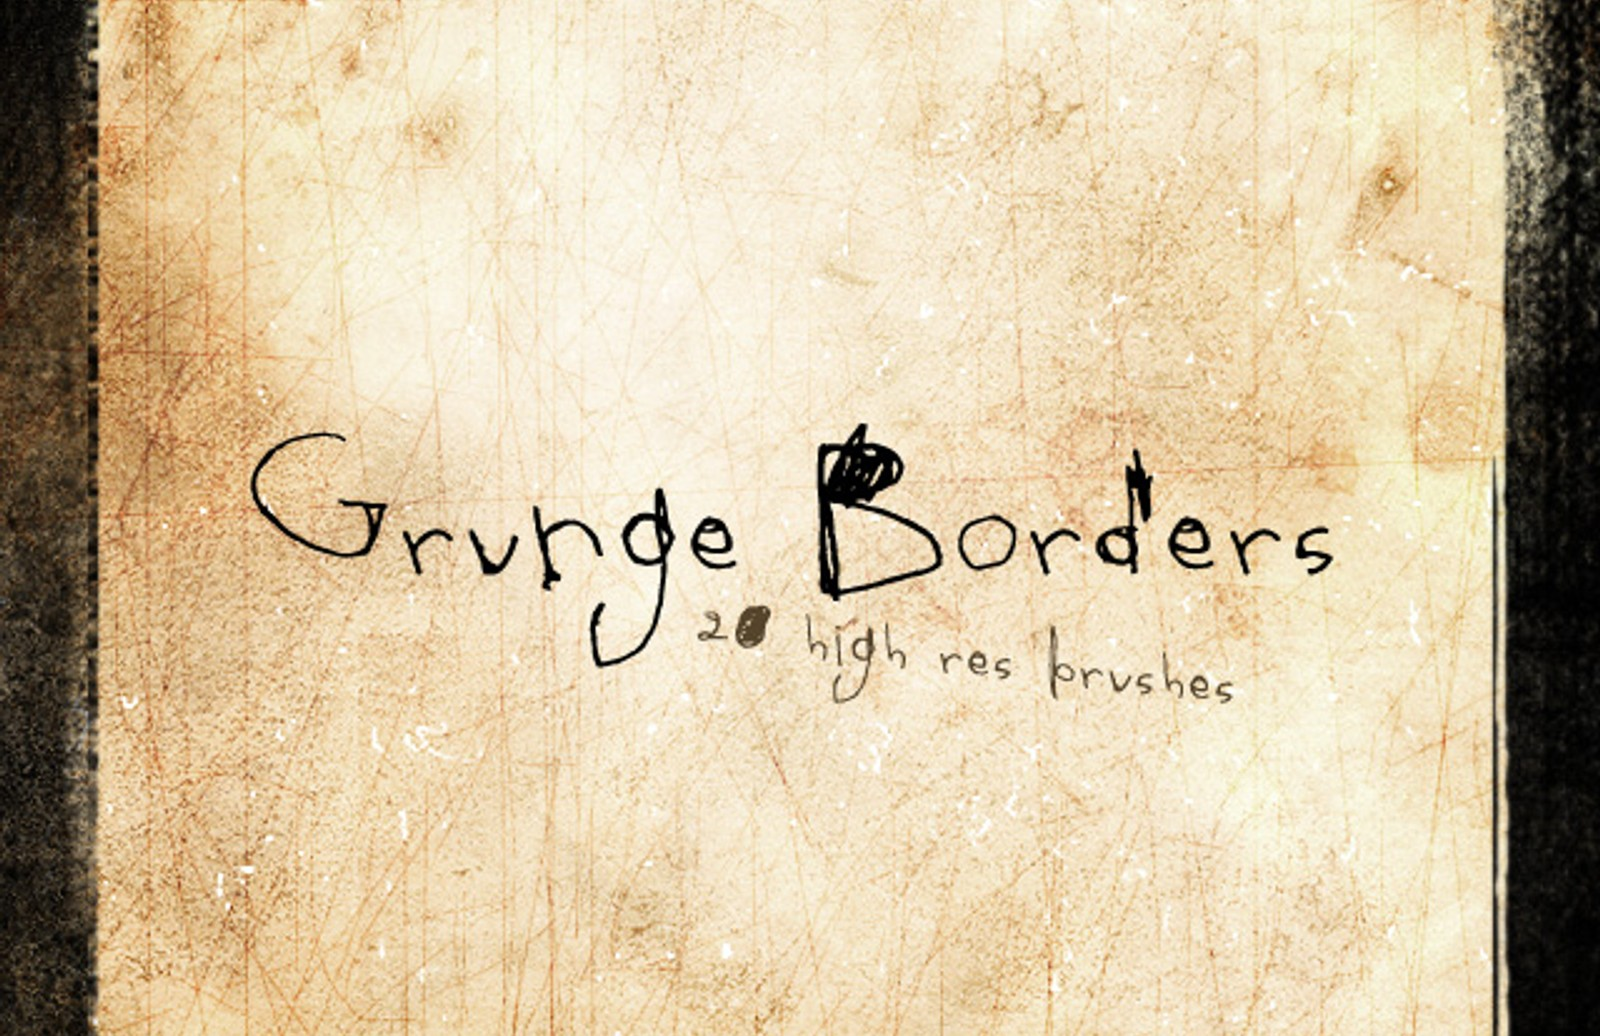 Grunge  Borders  Preview1